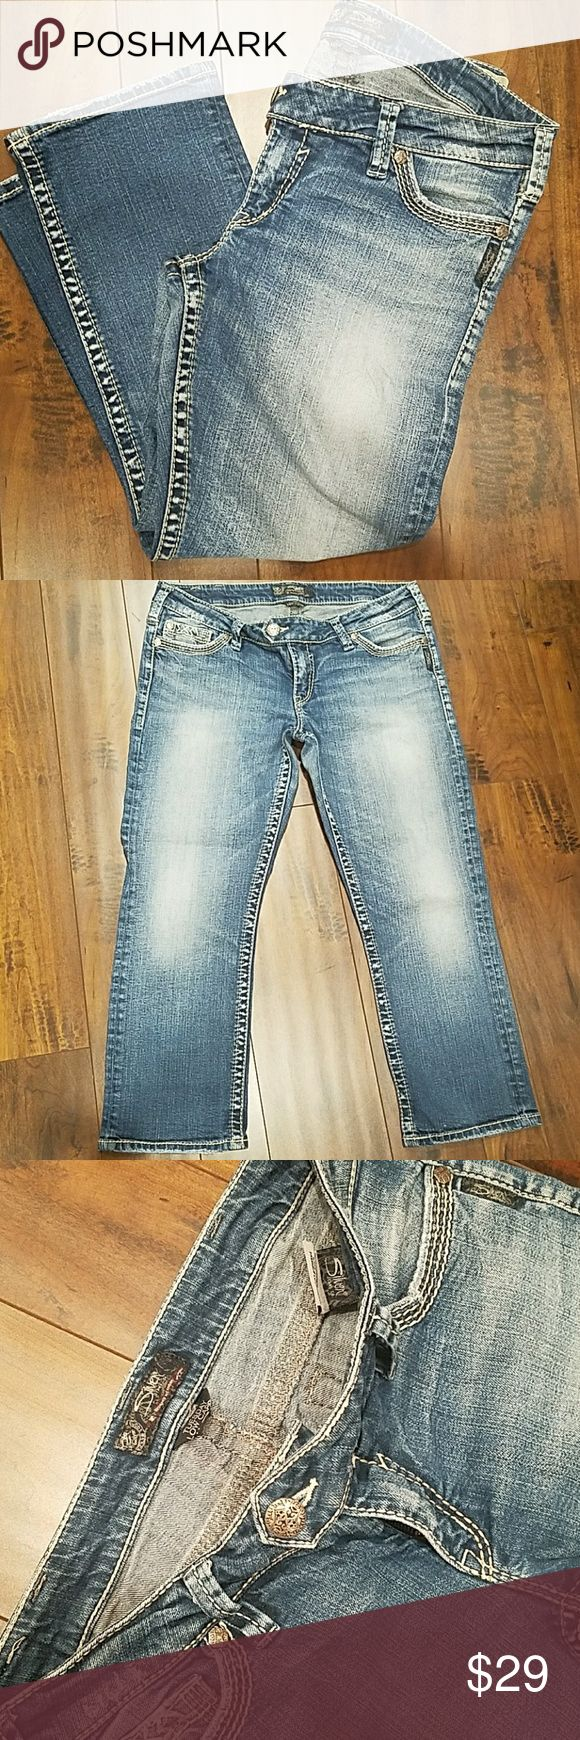 "Silver Jeans ""TUESDAY"" Capri Women's Silver Jeans TUESDAY Capri. Low-rise, five pocket design, tan detail stitching  and a zipper fly. NEVER BEEN IN DRYER!  Size: 33 Inseam: 24.5"" approx.  EXCELLENT CONDITION!   🚭SMOKE FREE HOME Silver Jeans Pants Capris"